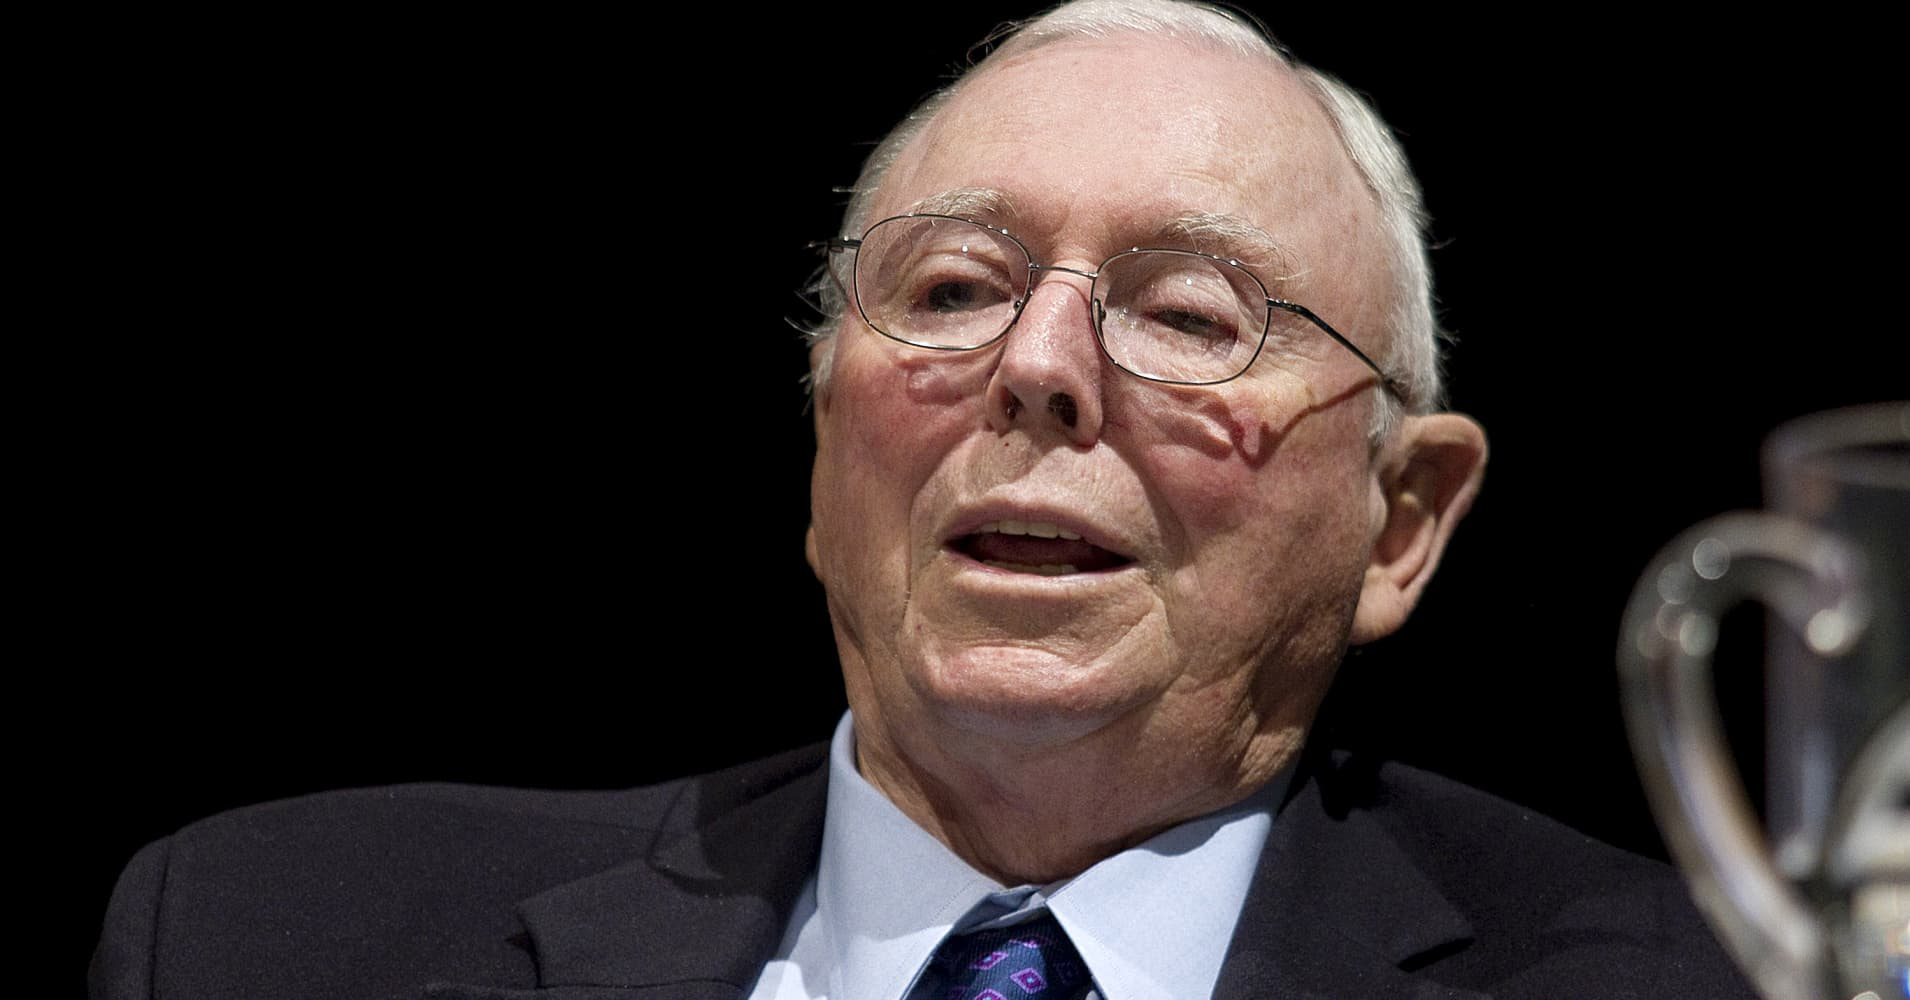 Inspirations from the Life of Charlie Munger